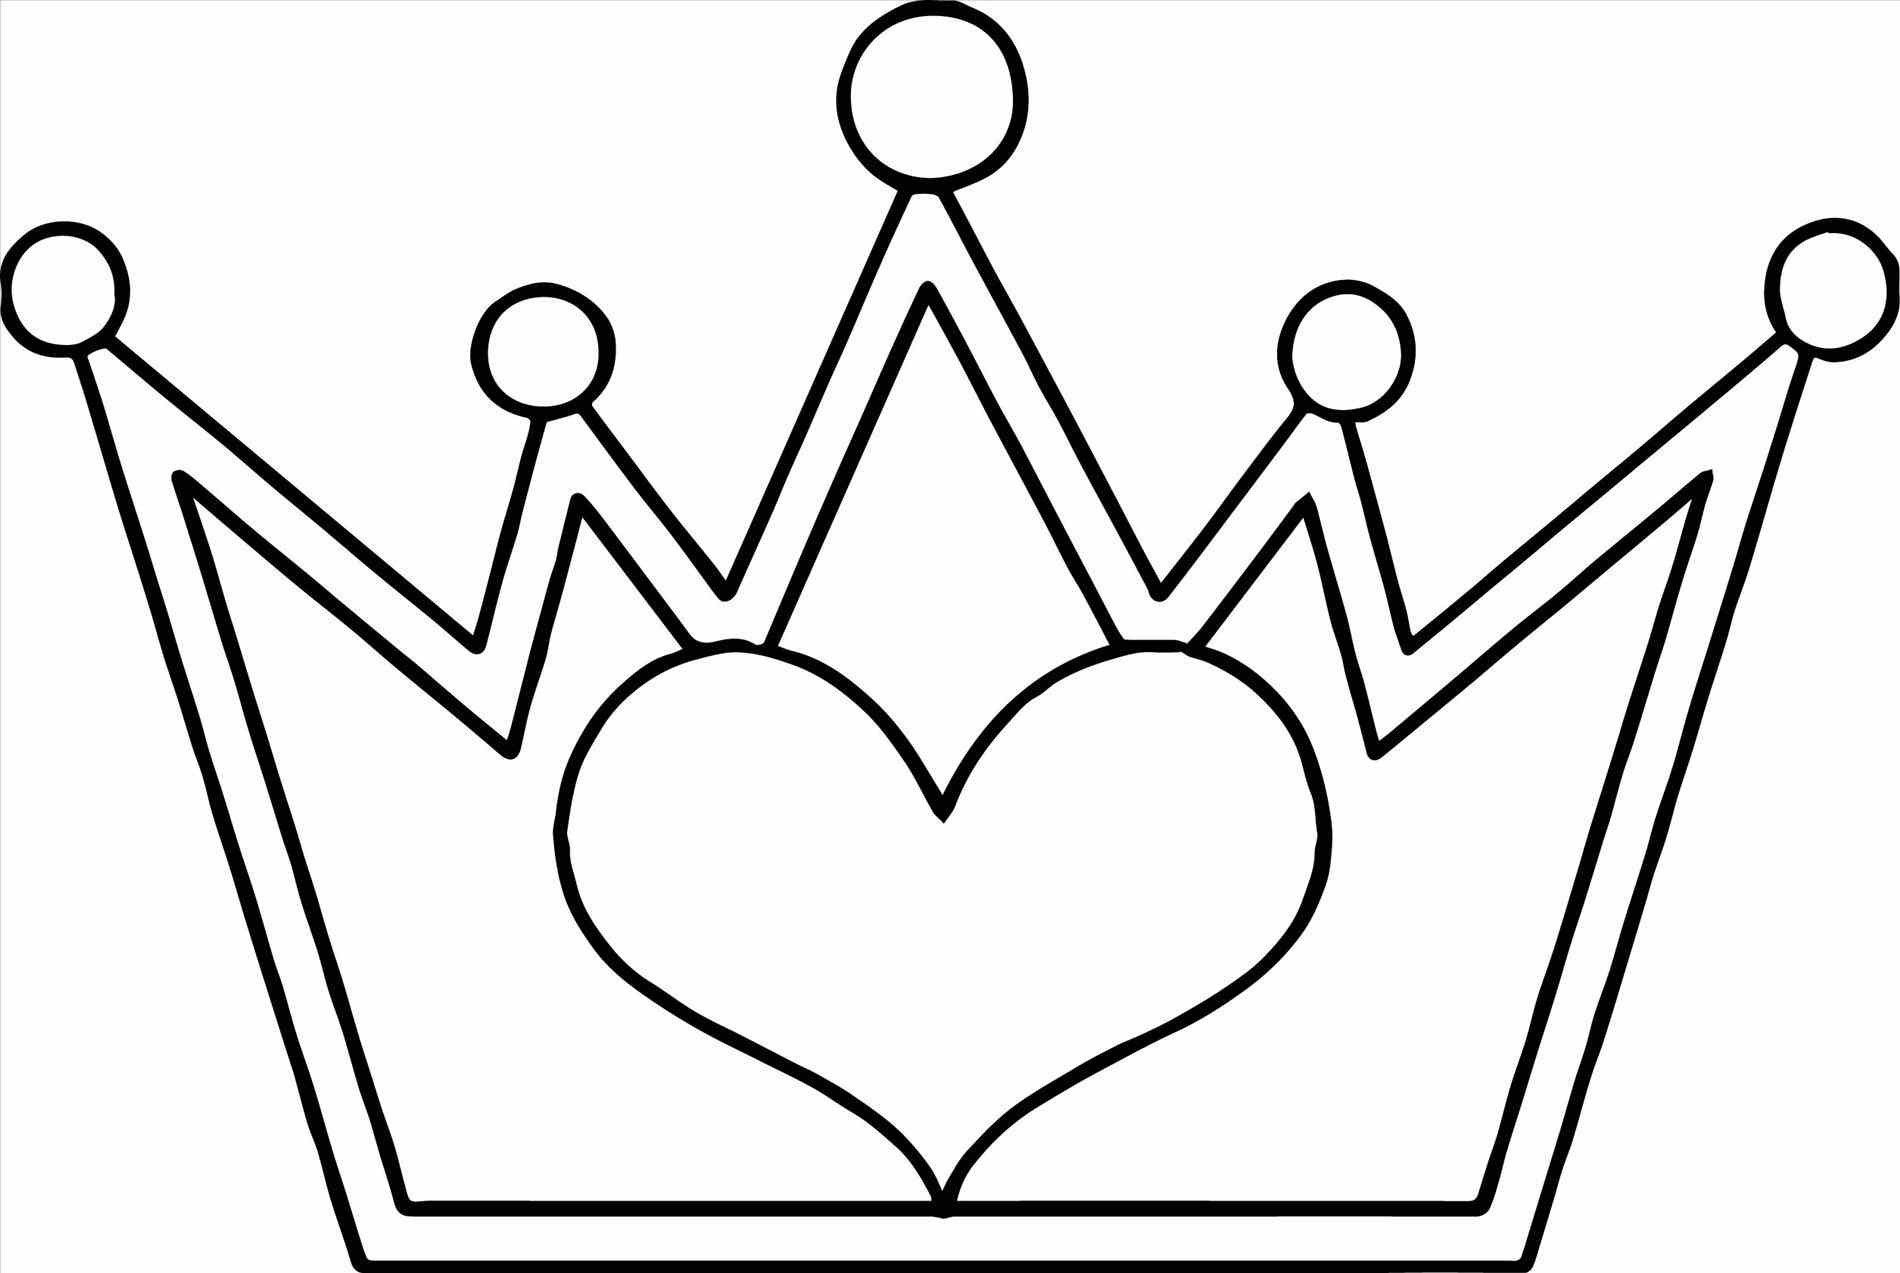 Princess Crown Coloring Page Through The Thousands Of Images On The Internet Regarding Princess Cr Crown Template Princess Printables Princess Coloring Pages